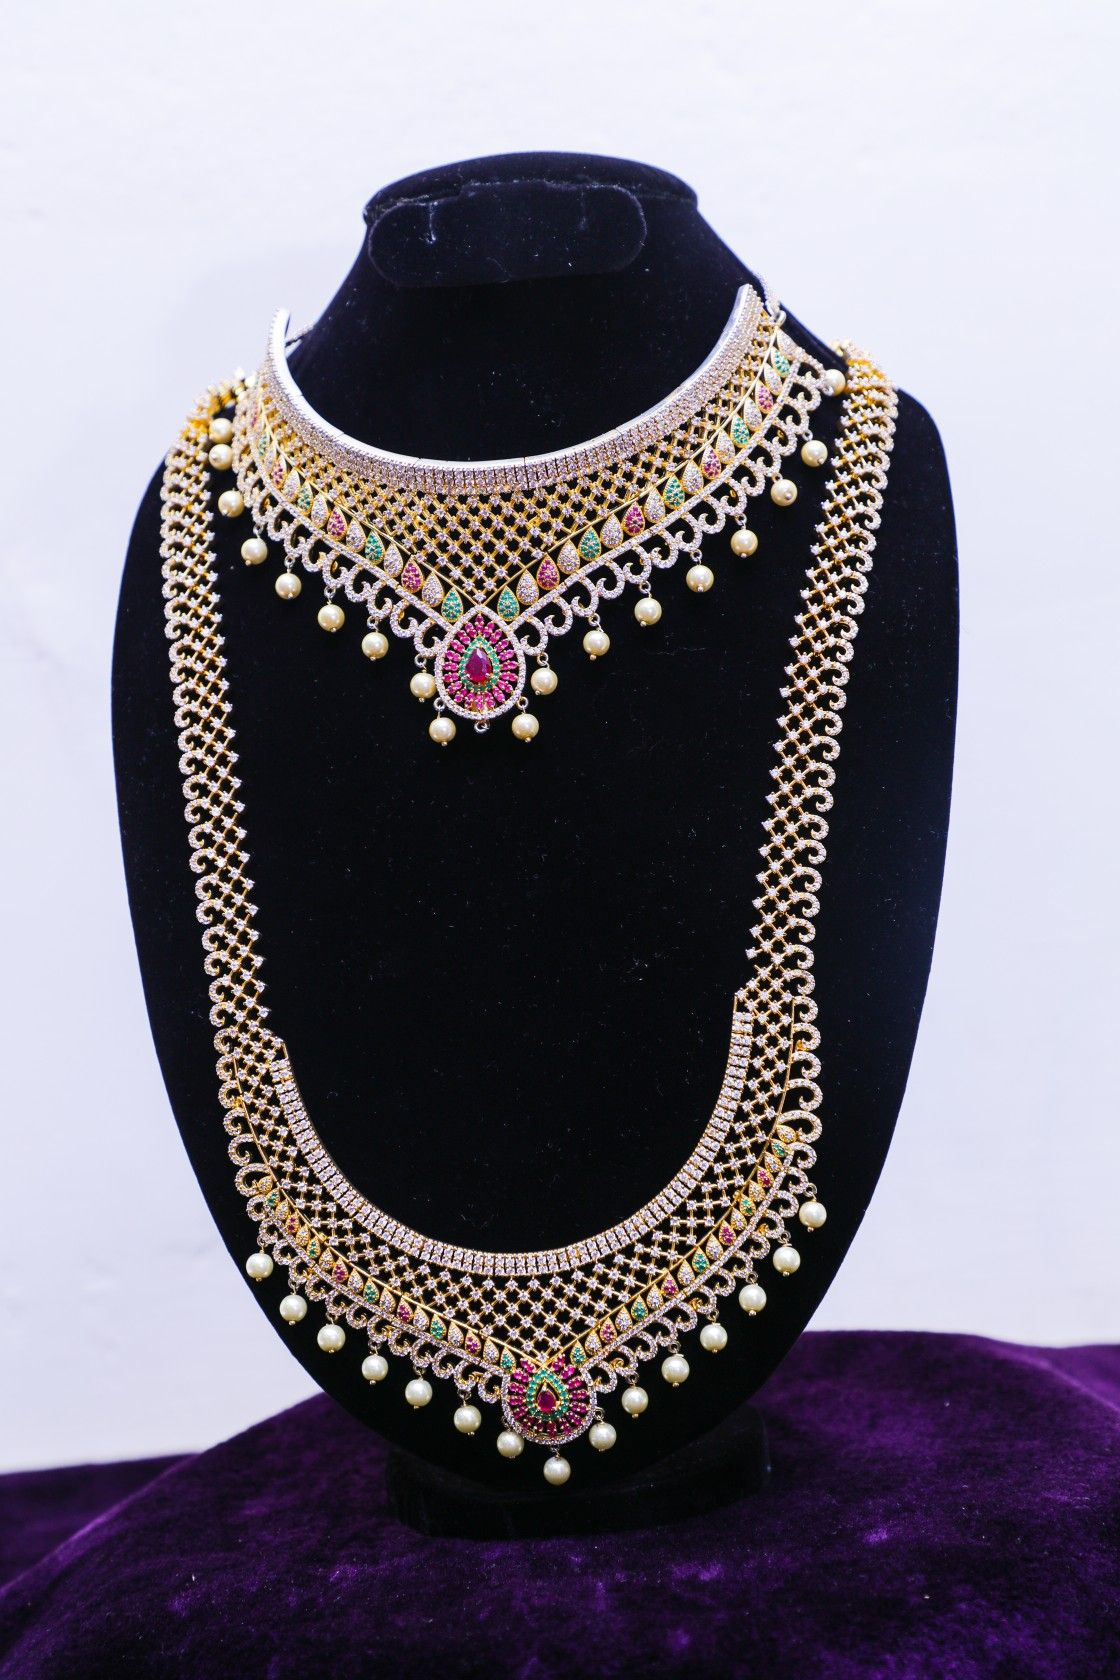 Bridal Jewellery For Rent : bridal, jewellery, Multicolor, Chocker, Bridal, Reasonable, Price!, Jewelry, Sets,, Jewelry,